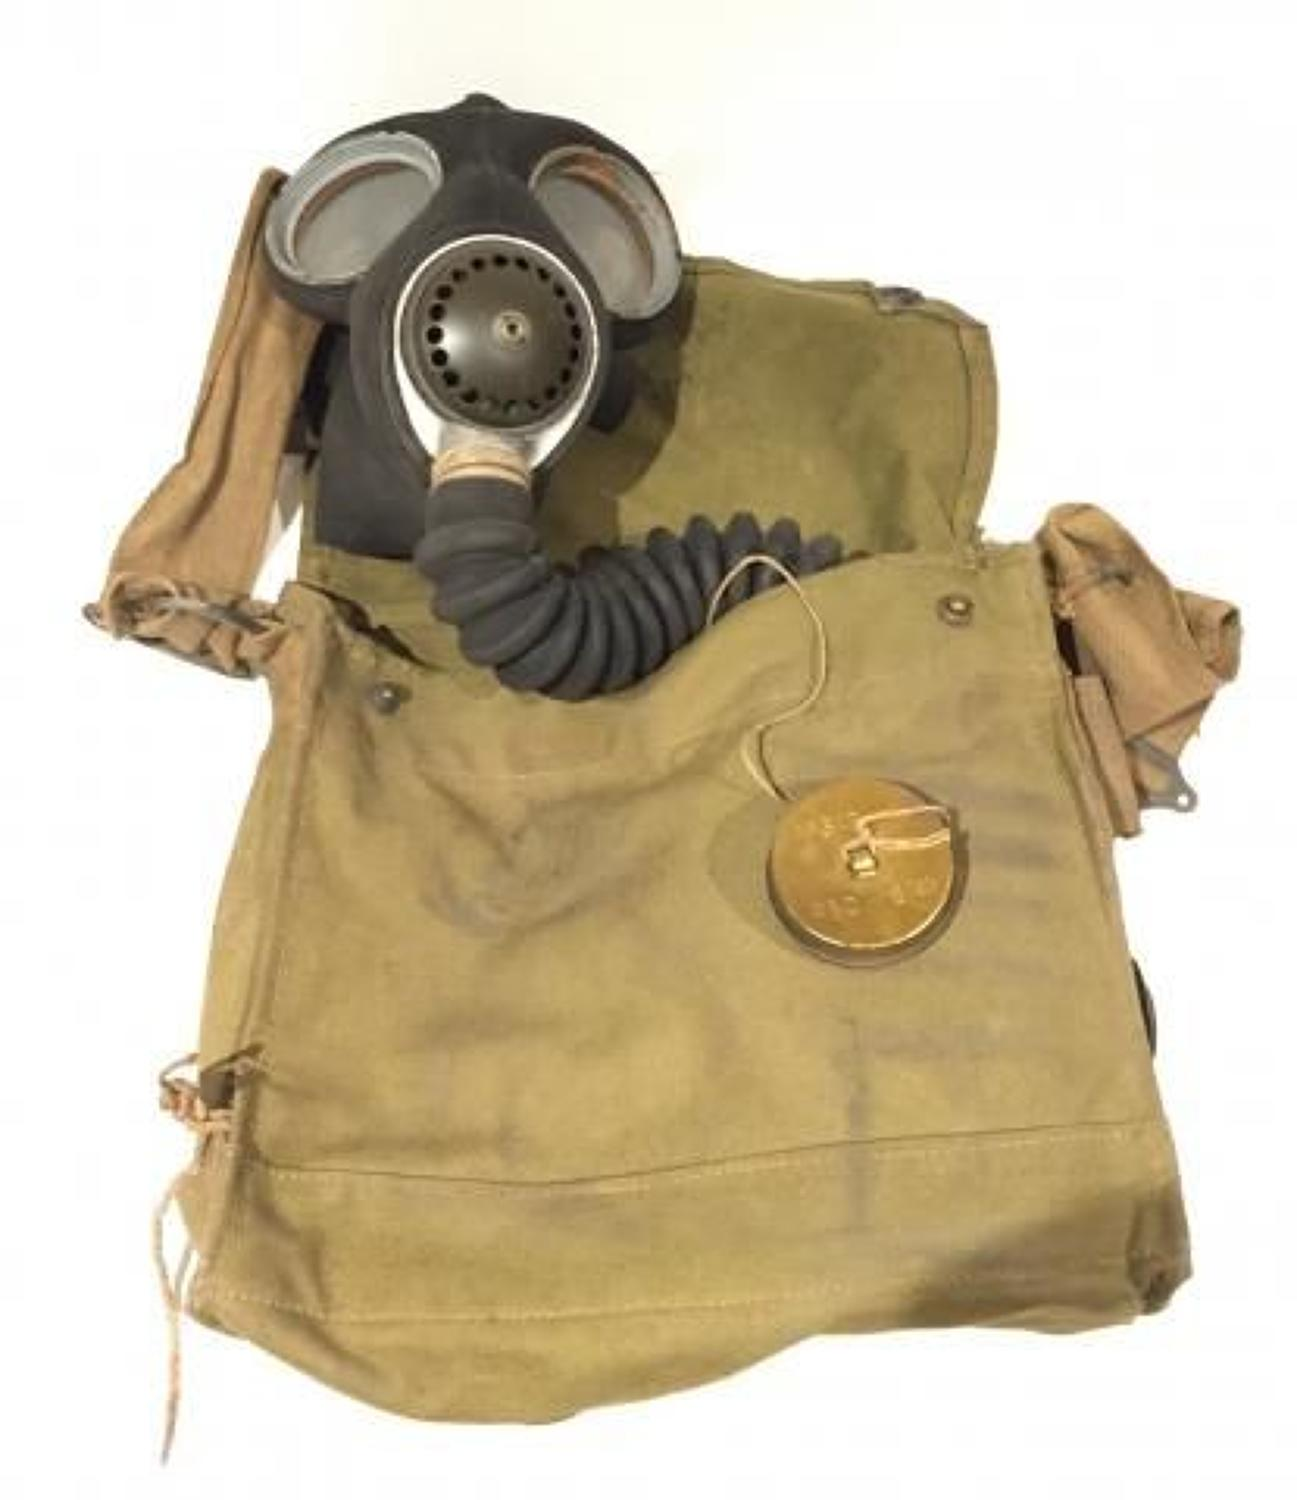 WW2 1942 Dated British Military Issue Gas Mask & Case.